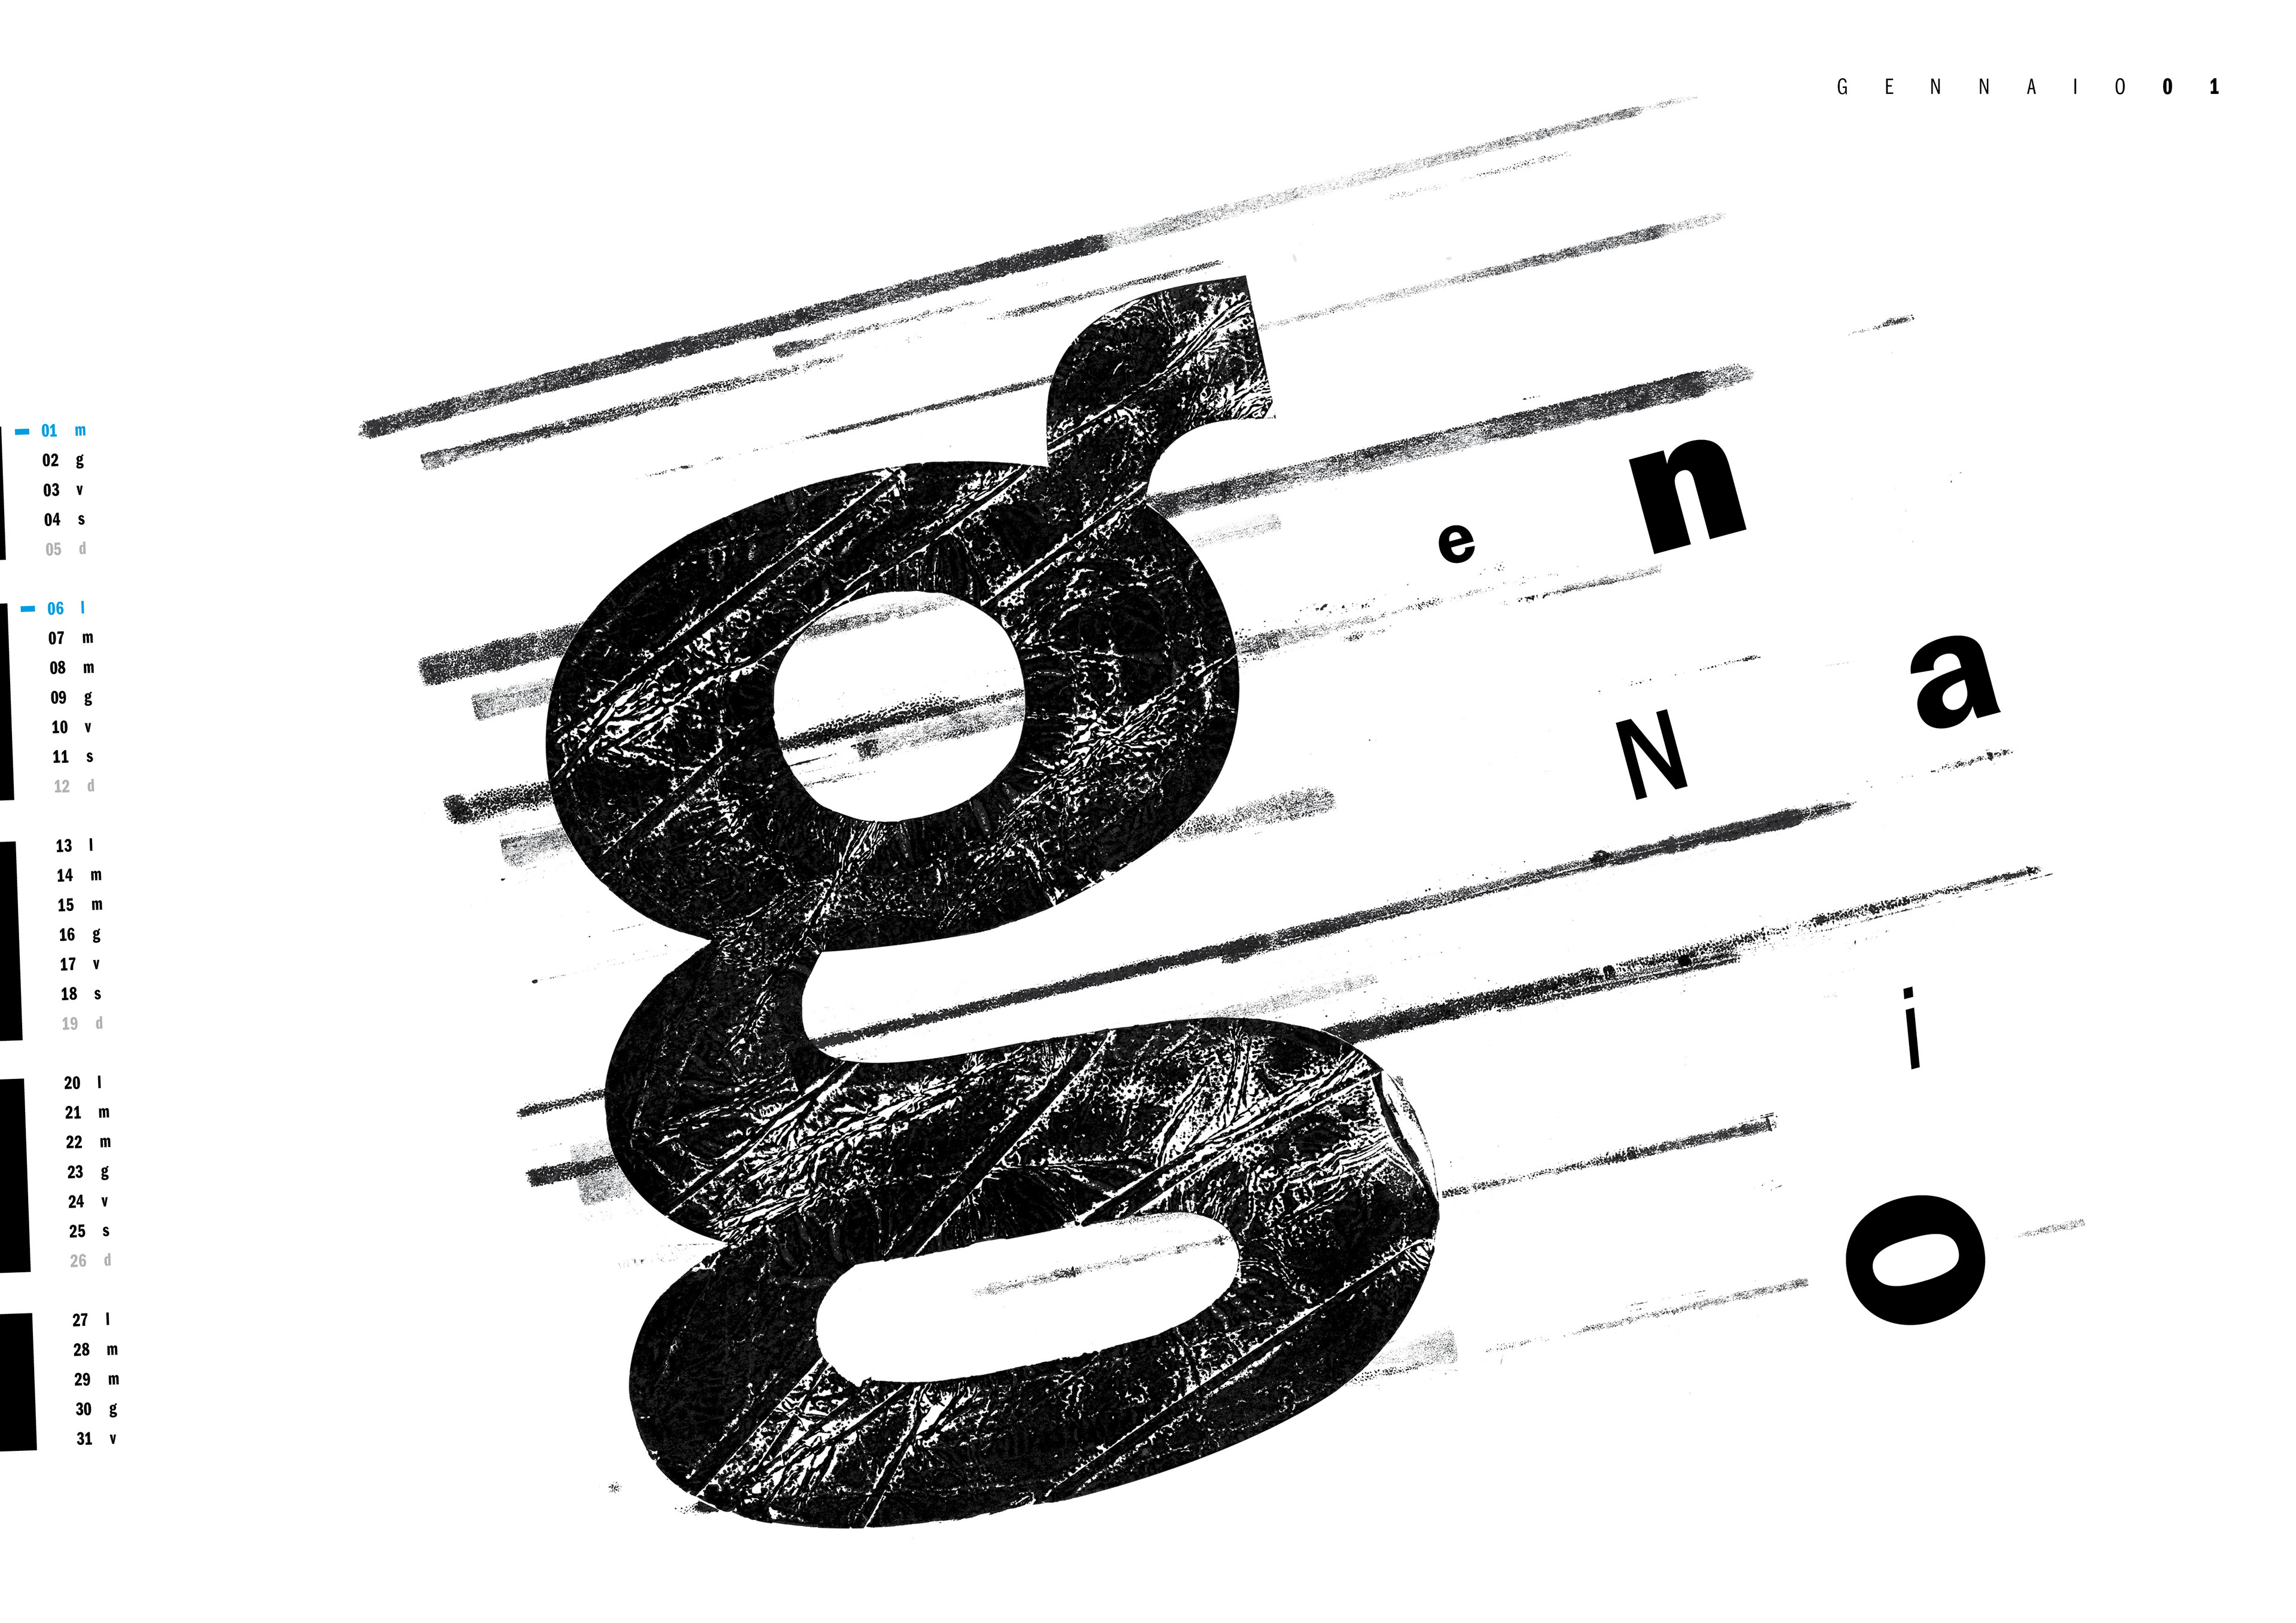 Experimenting layout composition using letterpress techniques.